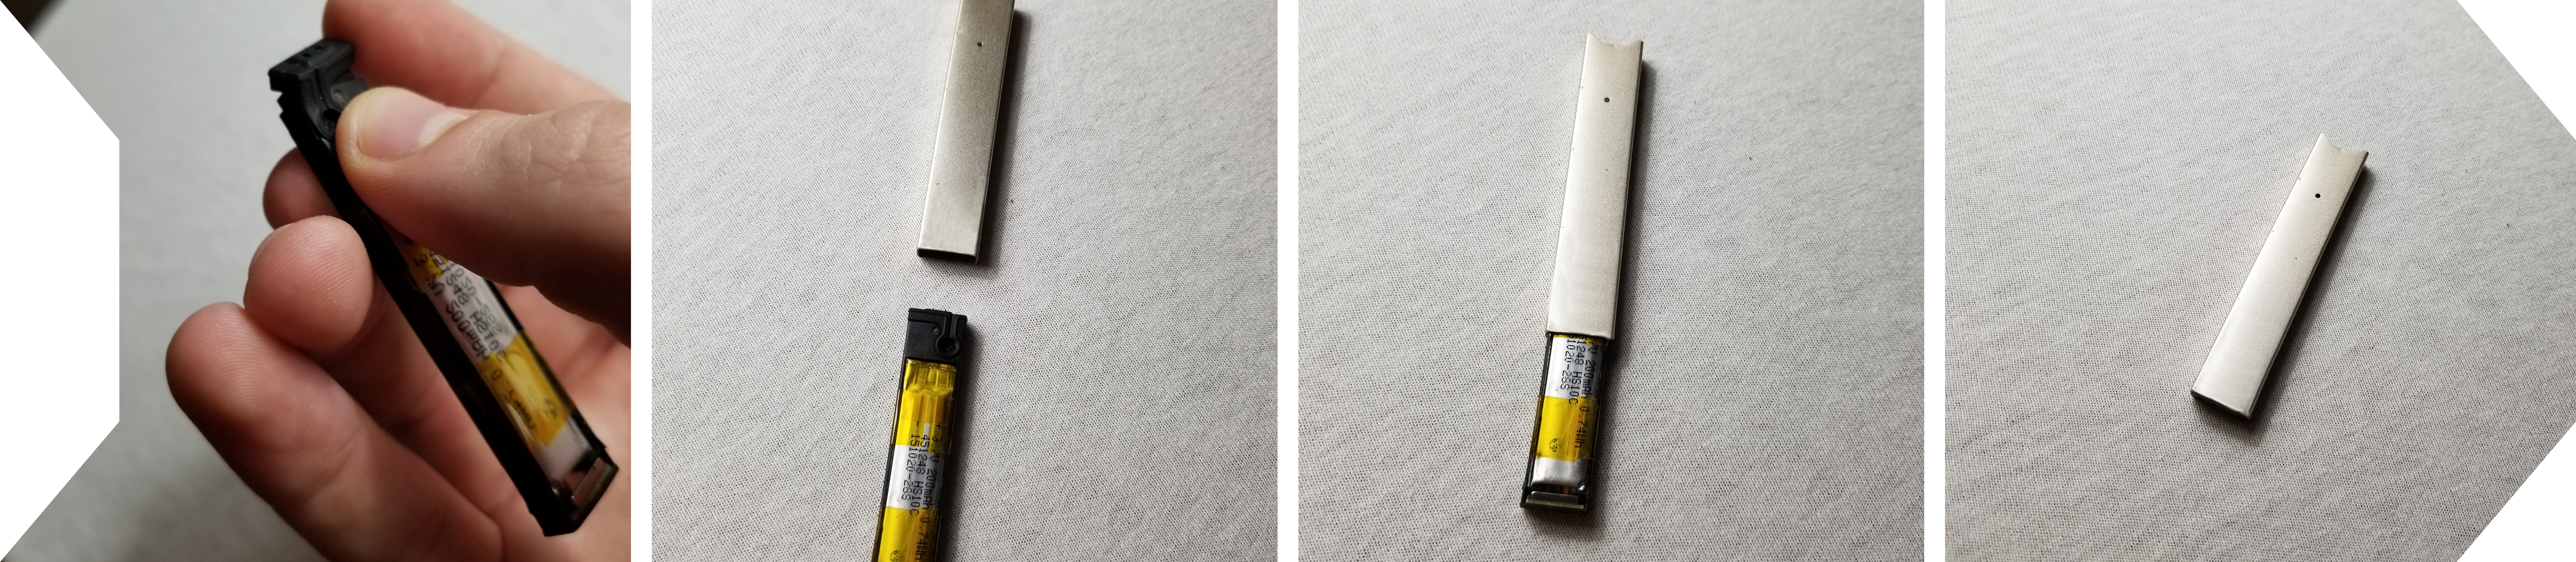 How to Clean the JUUL: Disassembly Edition  | The Pod Professor